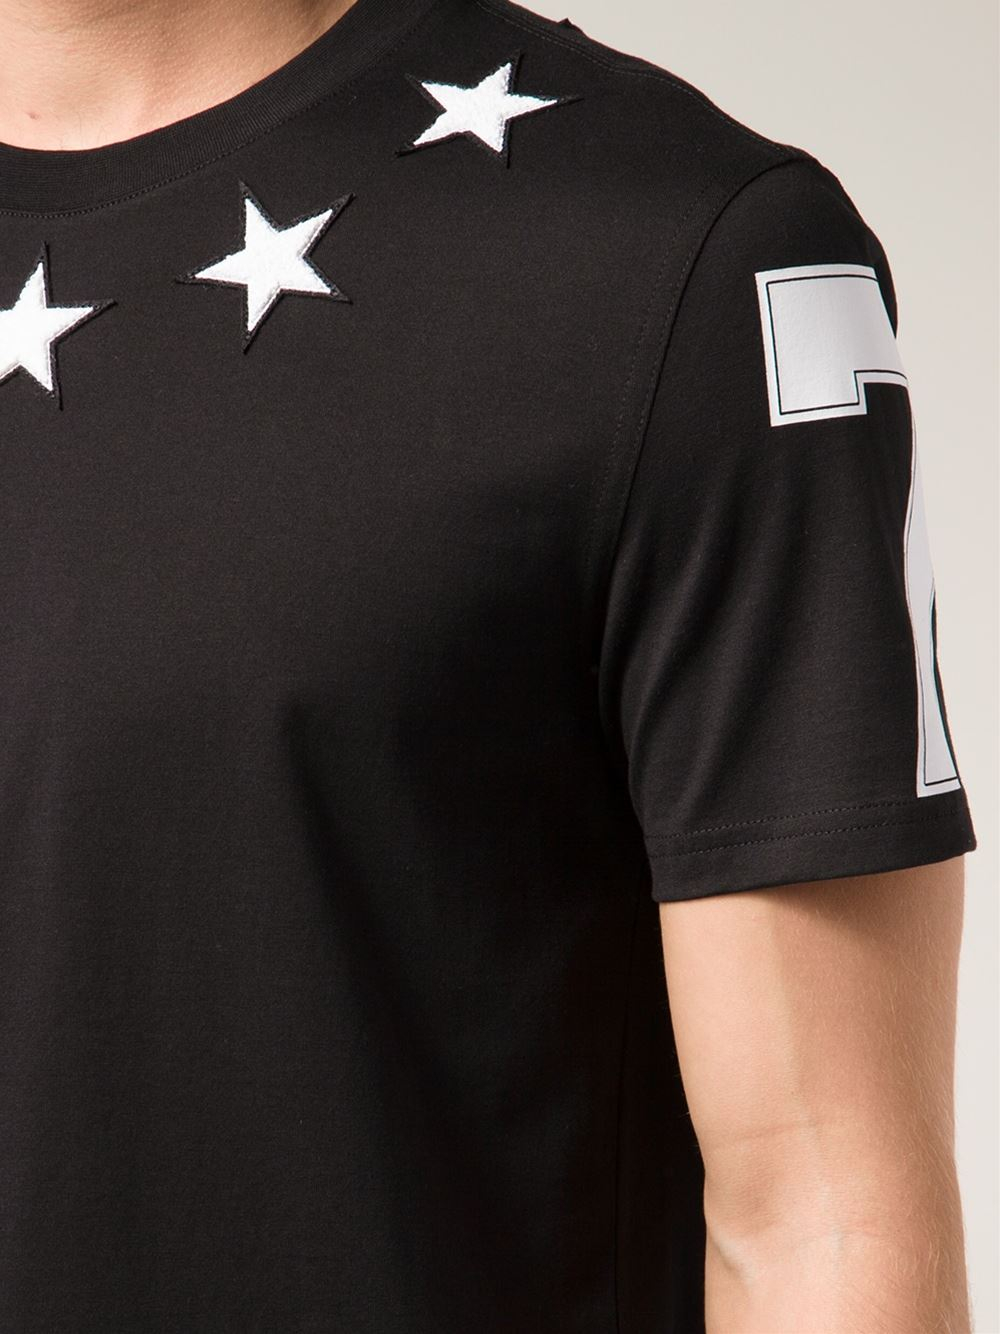 Lyst givenchy terry cloth star t shirt in black for men for Givenchy 5 star shirt